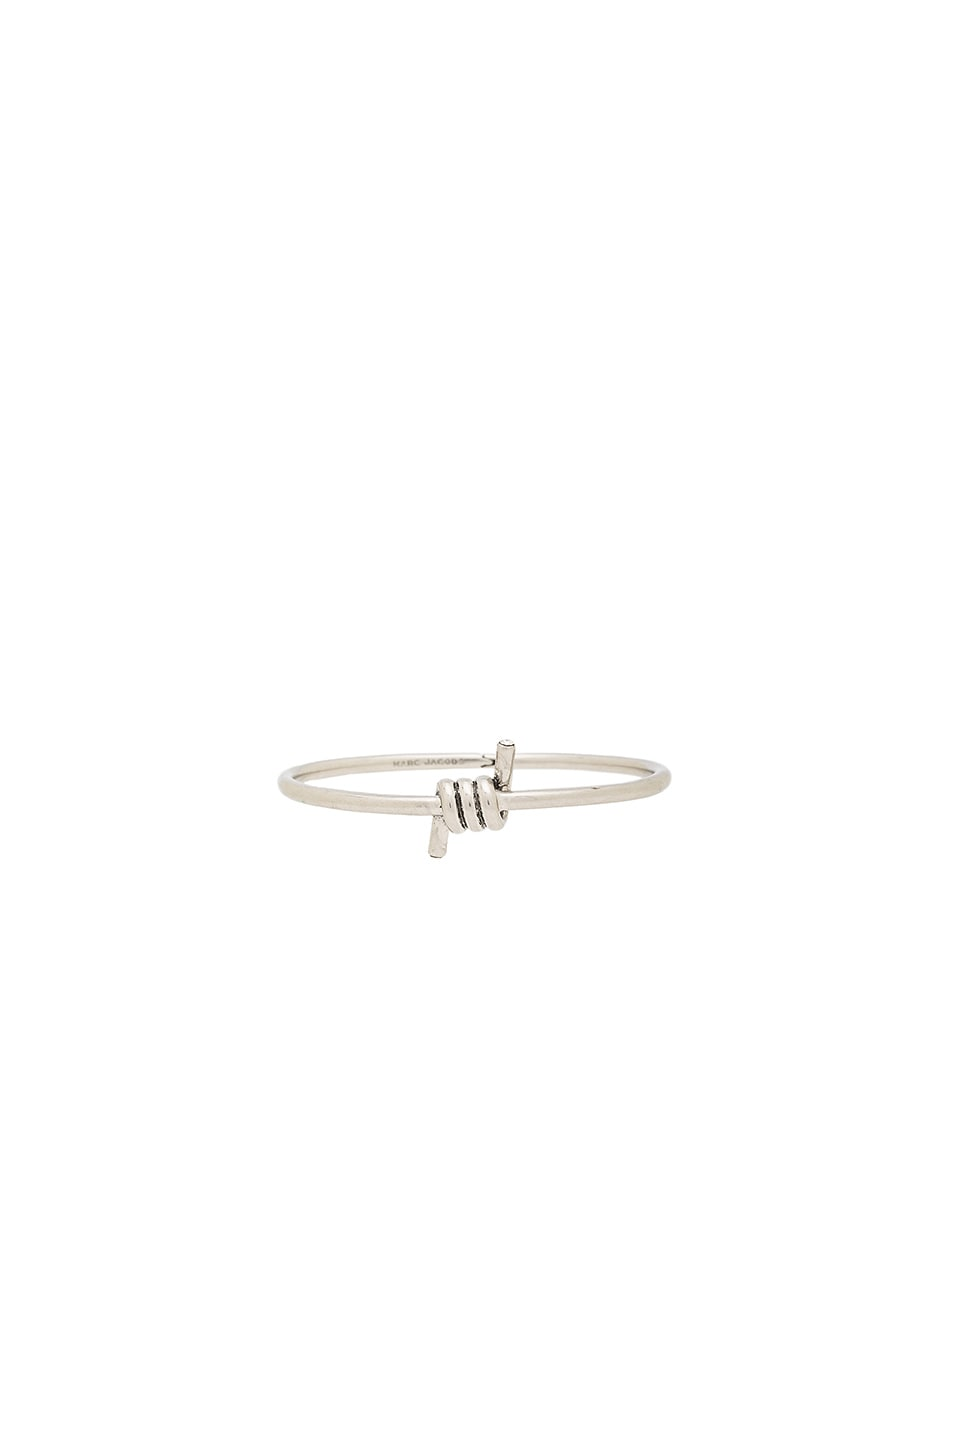 Twisted Hinge Cuff by Marc Jacobs